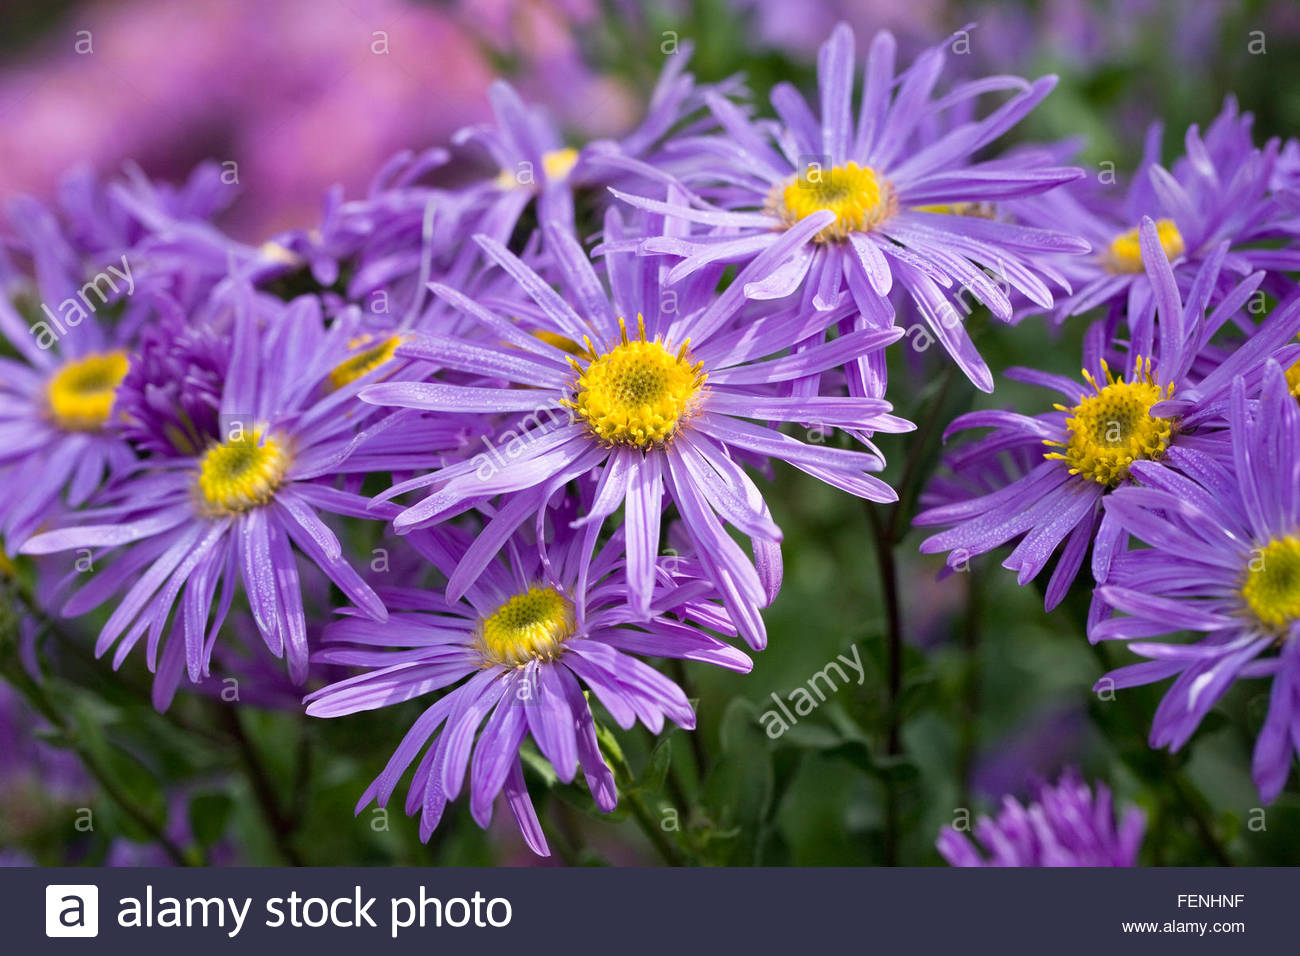 Herbaceous Perennial Plant September Autumn Late Daisy Flower Mauve